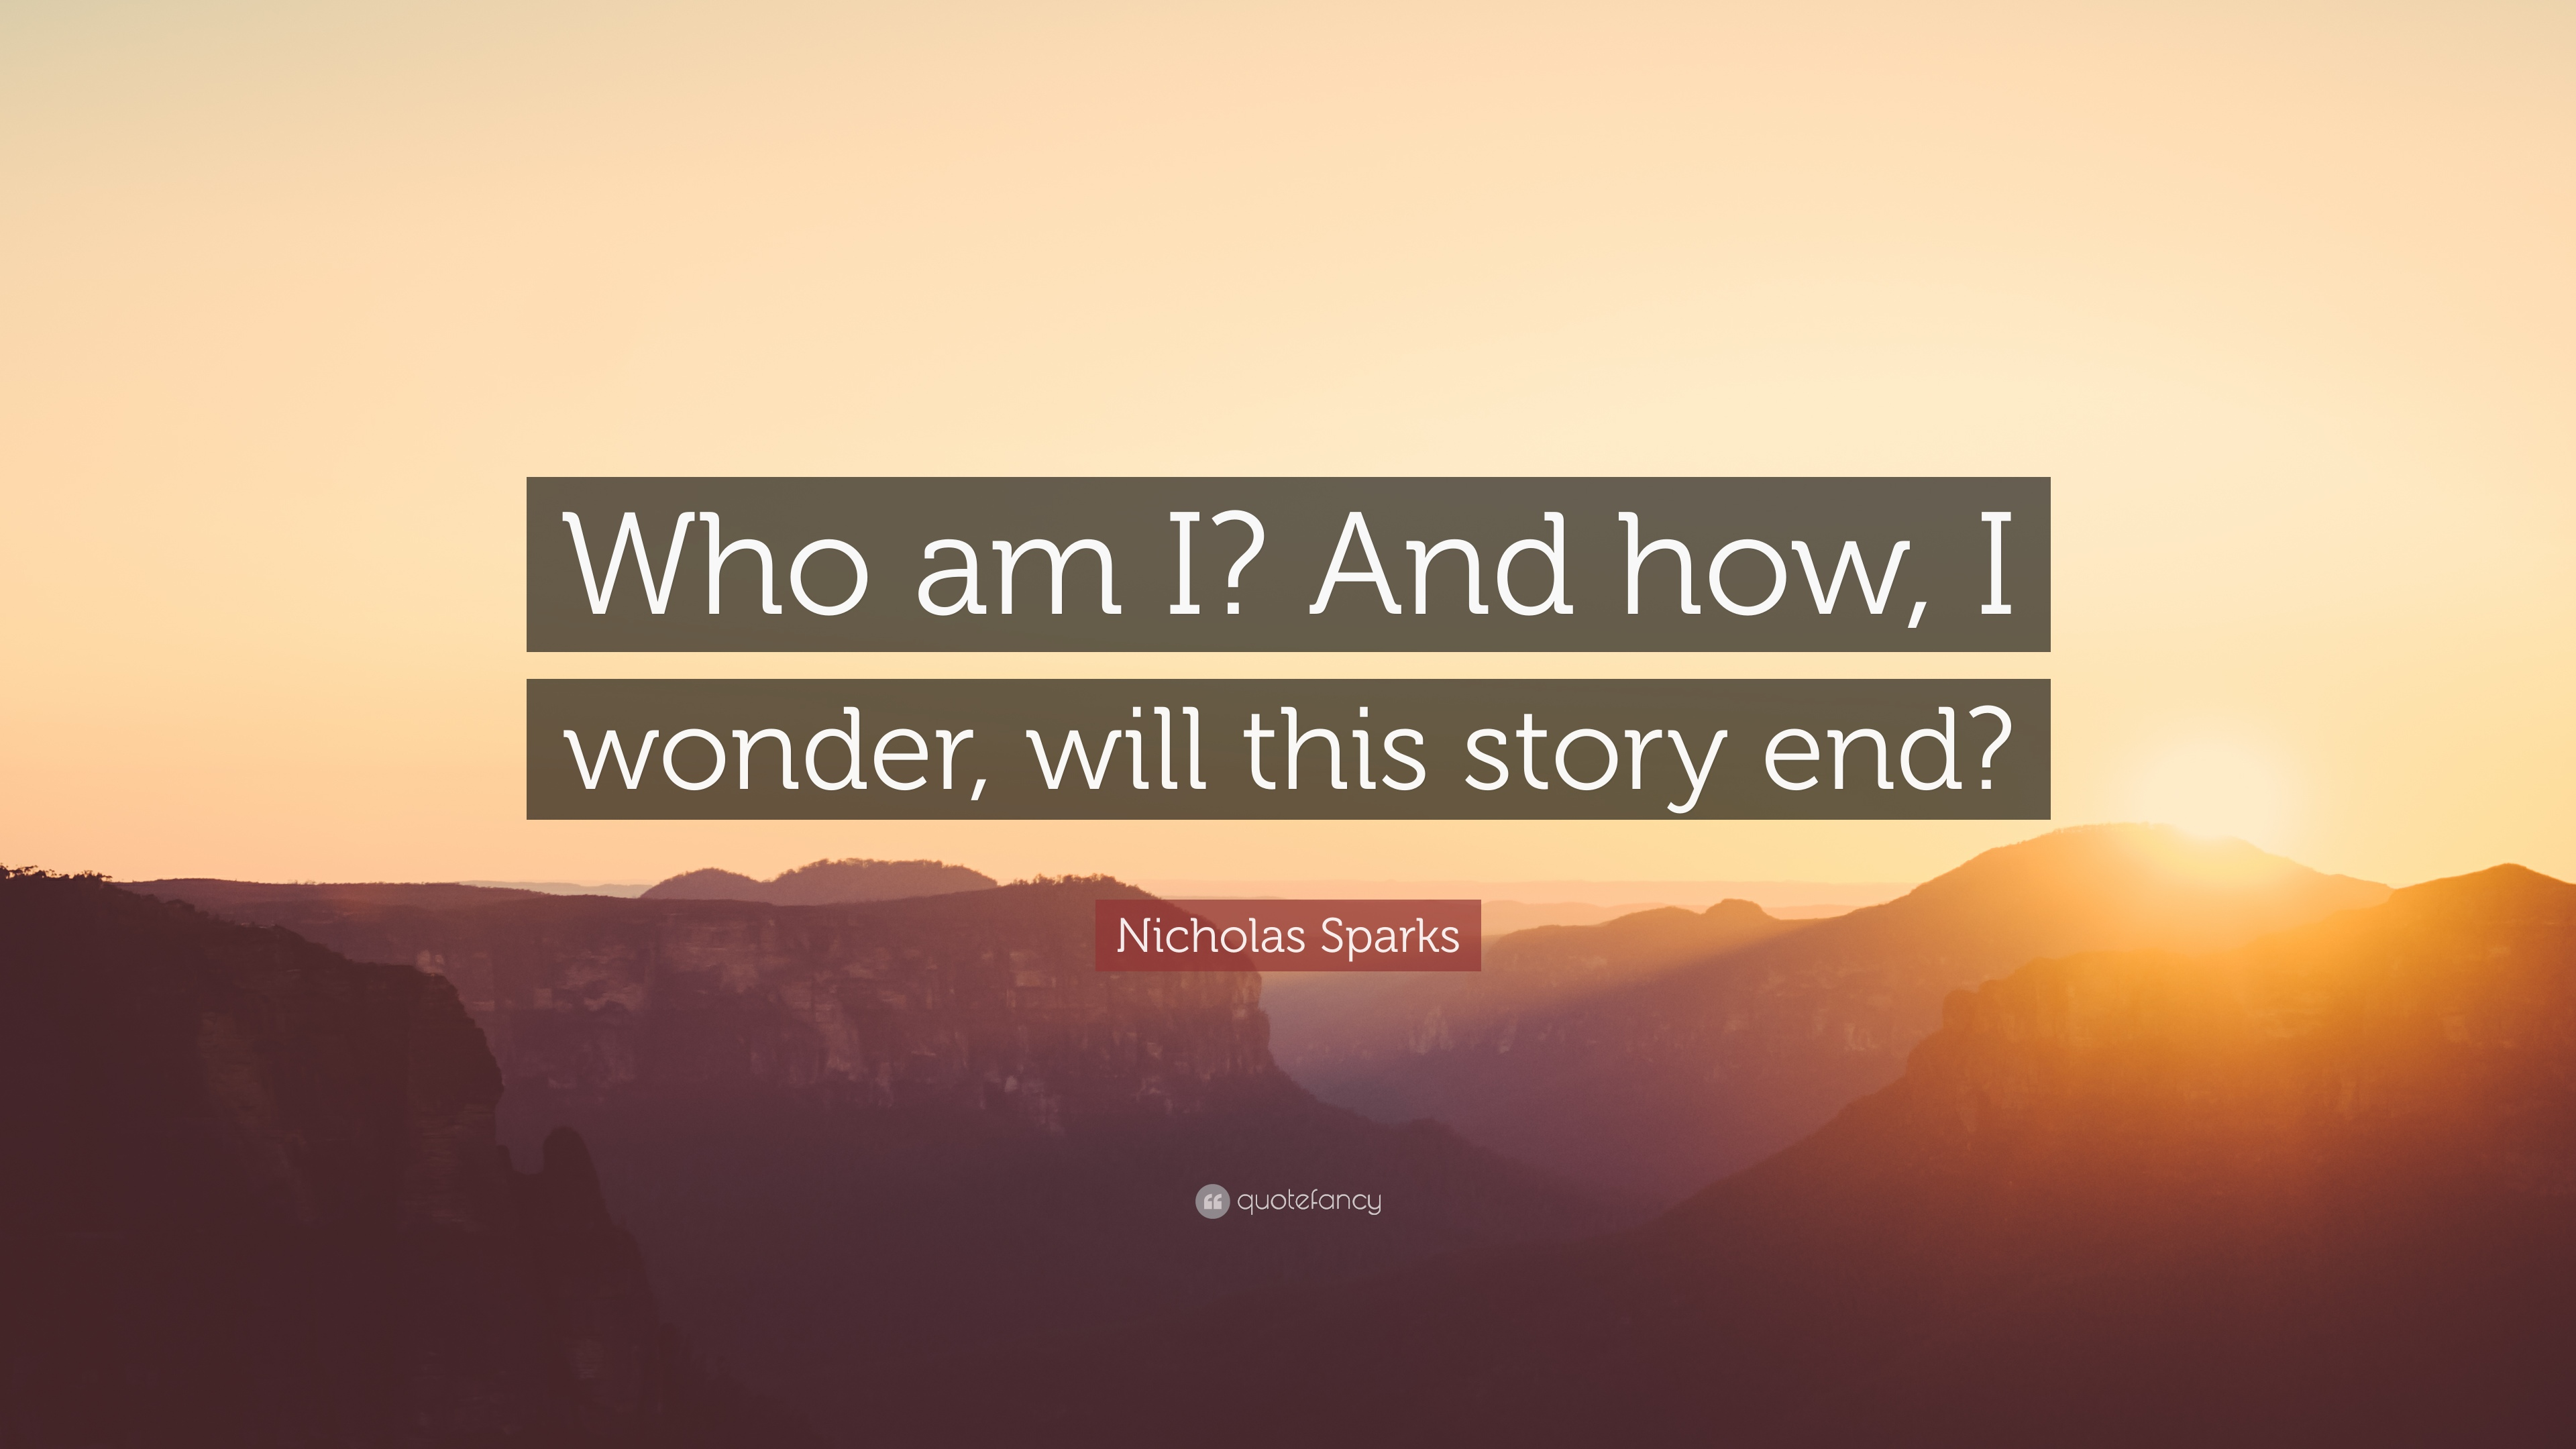 Nicholas Sparks Quote Who Am I And How I Wonder Will This Story